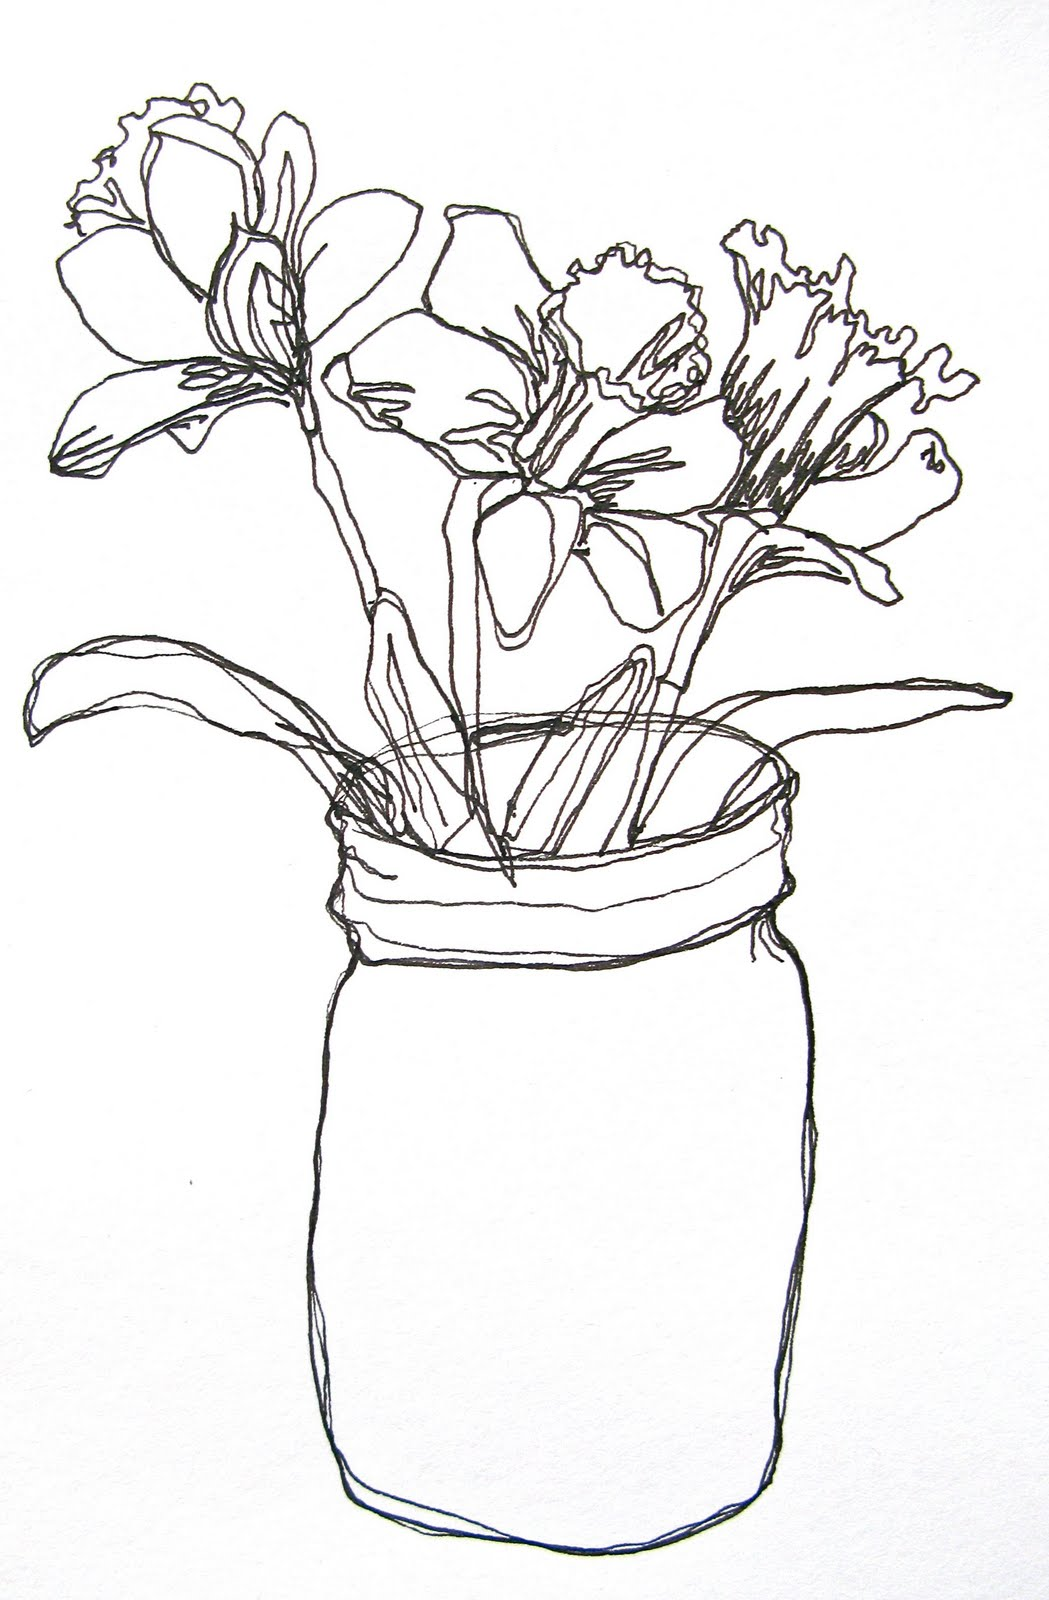 Contour Line Drawing Of A Flower : Corrieberry pie flower doodles